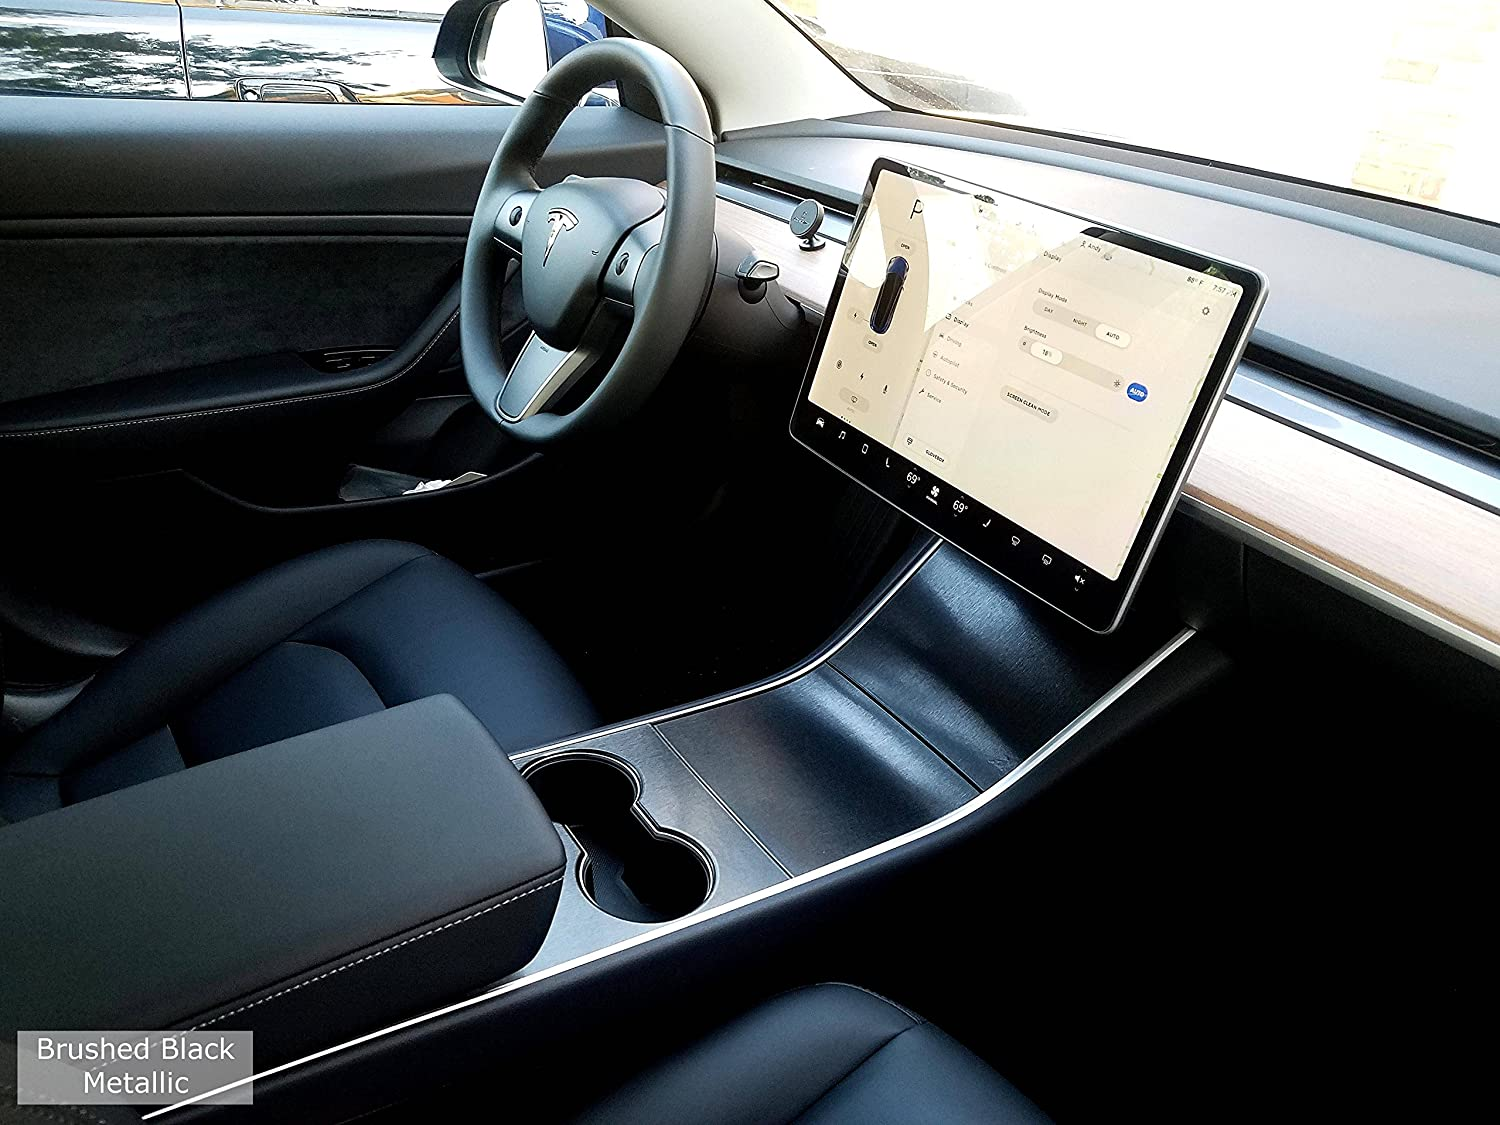 EV Wraps Tesla Model 3 Center Console Wrap - Brushed Black Metallic